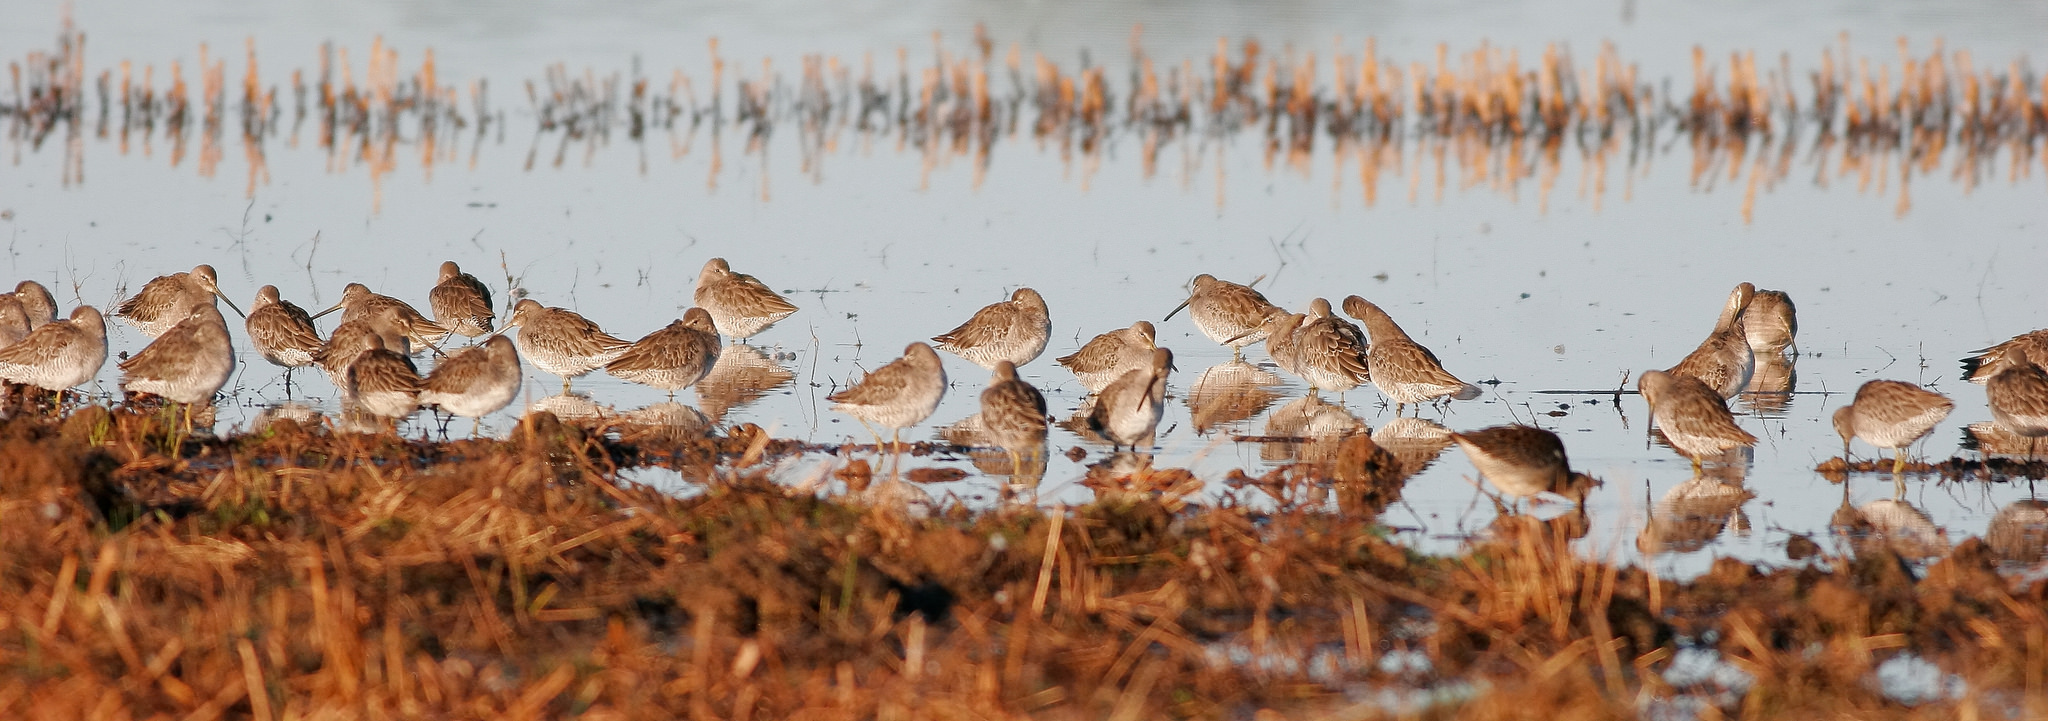 Long-billed Dowitchers by Andrew Johnson